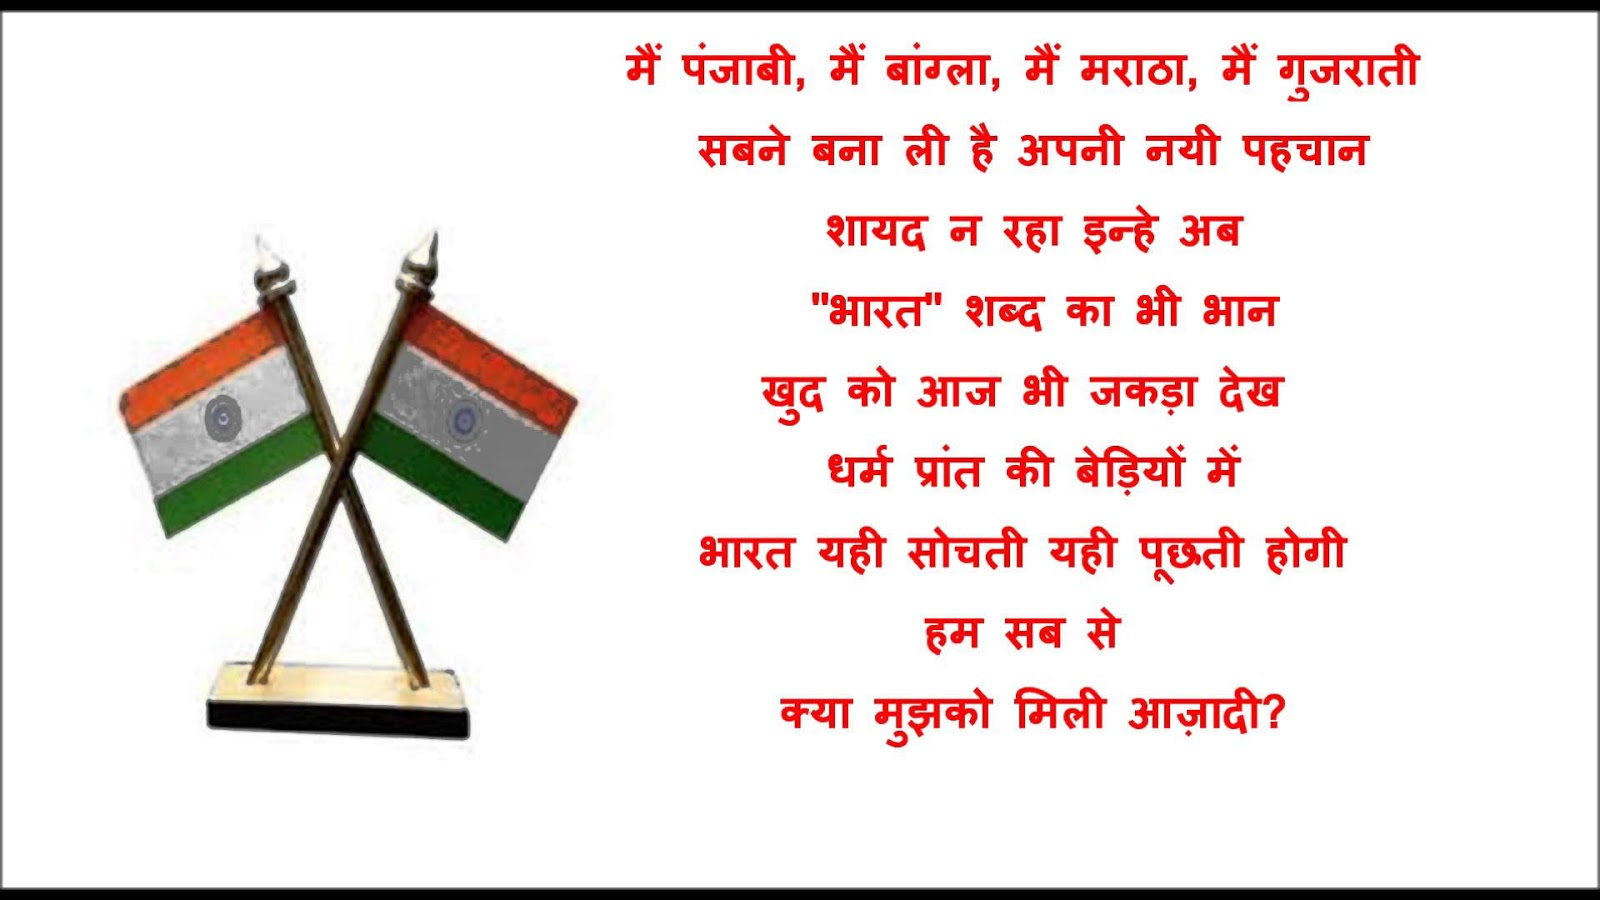 Republic Day Poems In Hindi For